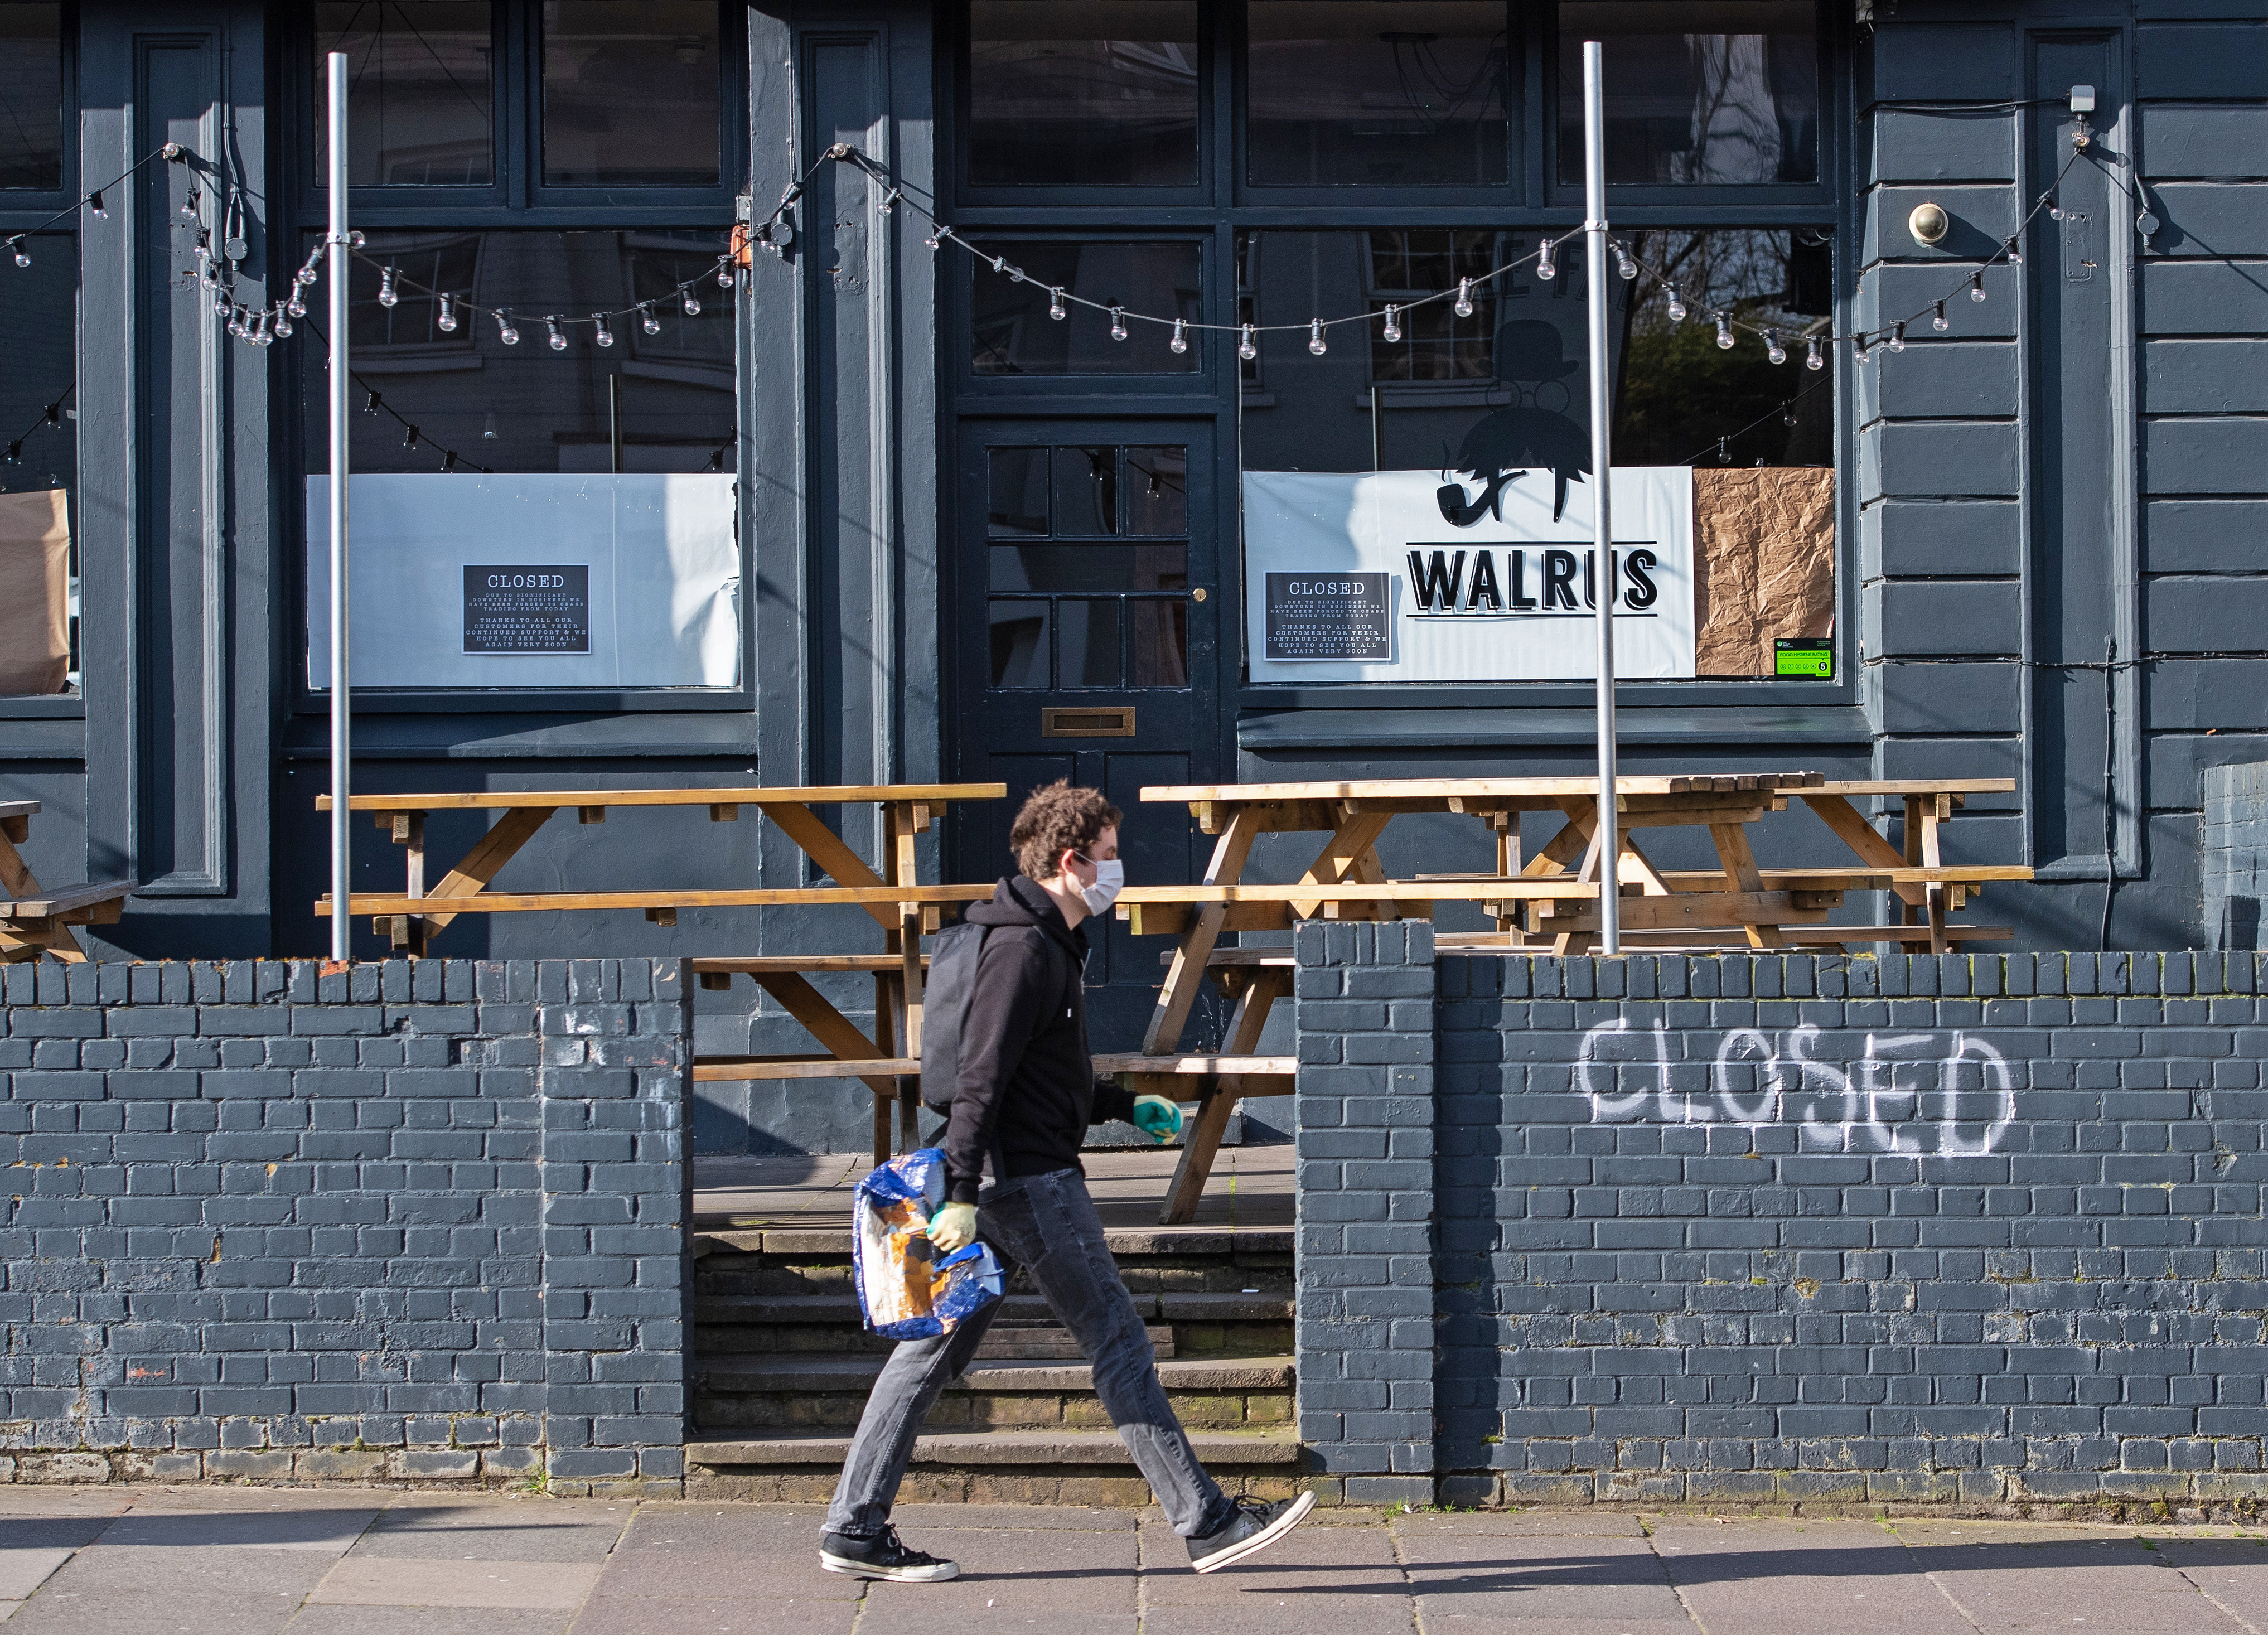 EMBARGOED TO 0001 MONDAY SEPTEMBER 14 File photo dated 21/03/20 of a closed pub in New Cross, south London. Thousands of pubs across the UK could be forced to call time as they face a looming �800 million business rates bill, a trade association has said.